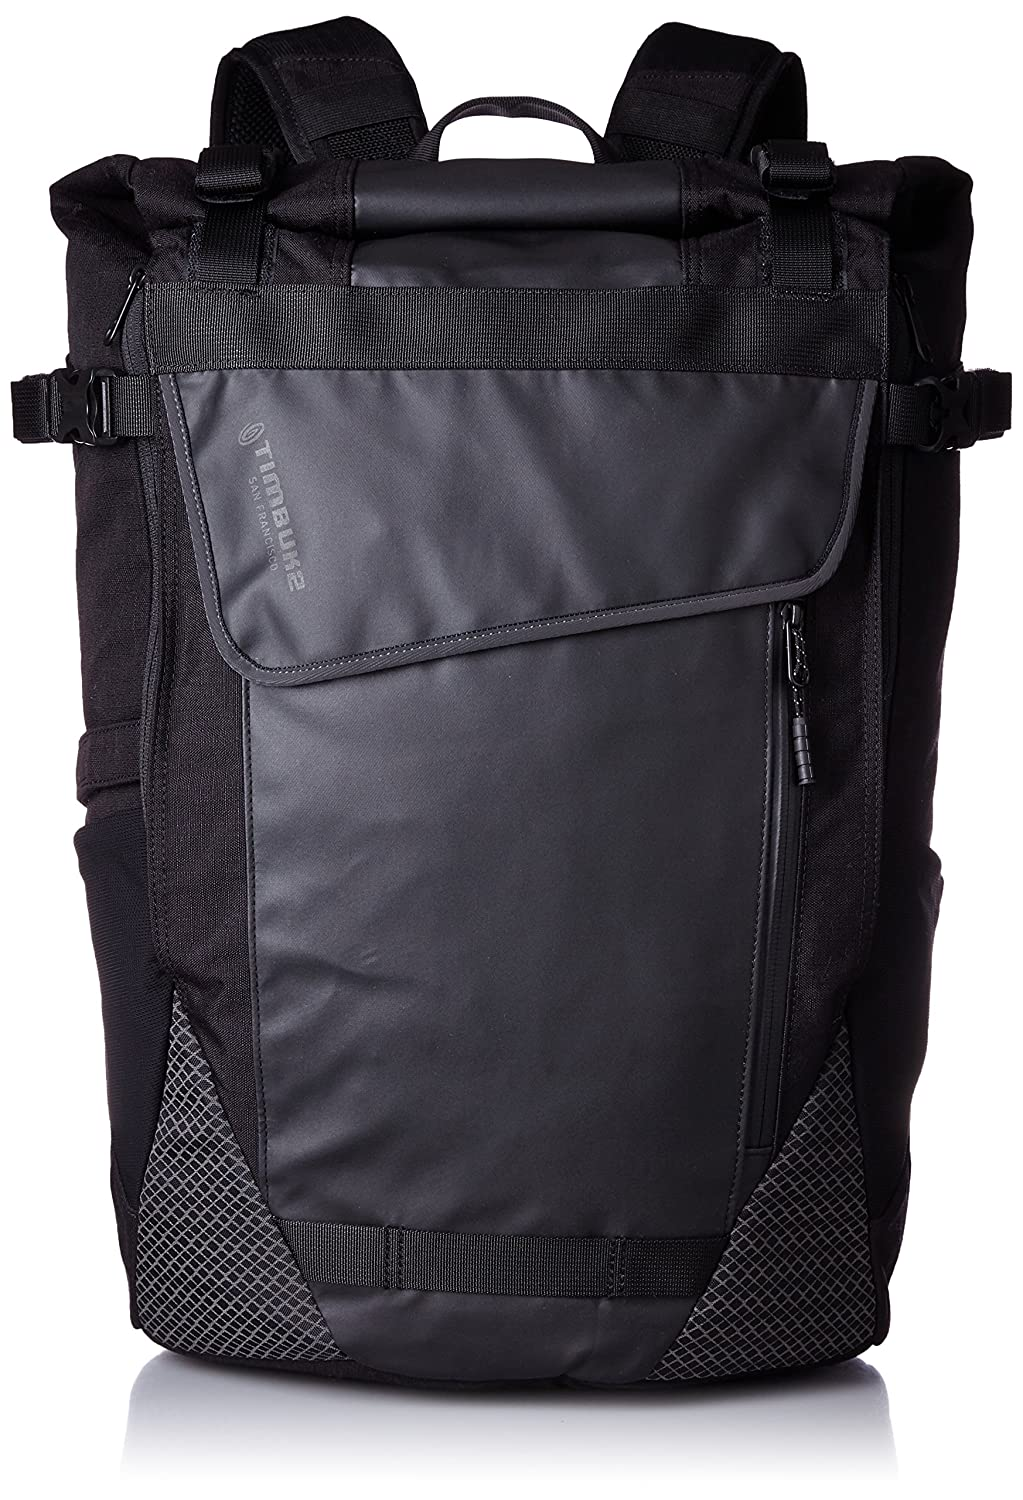 Timbuk2 Especial Tres Cycling Backpack, Black, One Size 437-3-2001